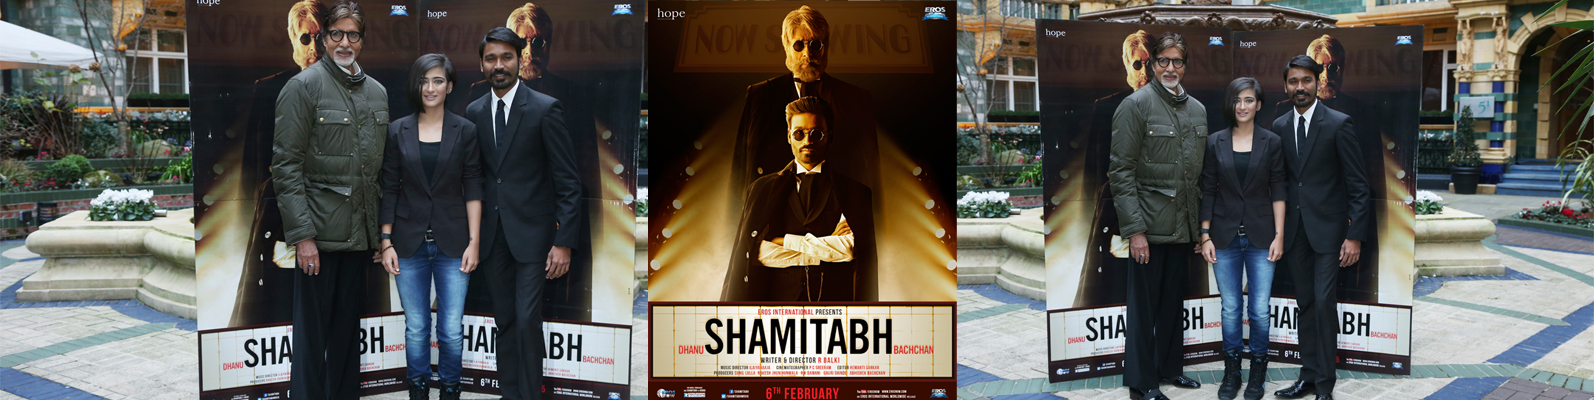 Shamitabh - The Man Behind The Voice